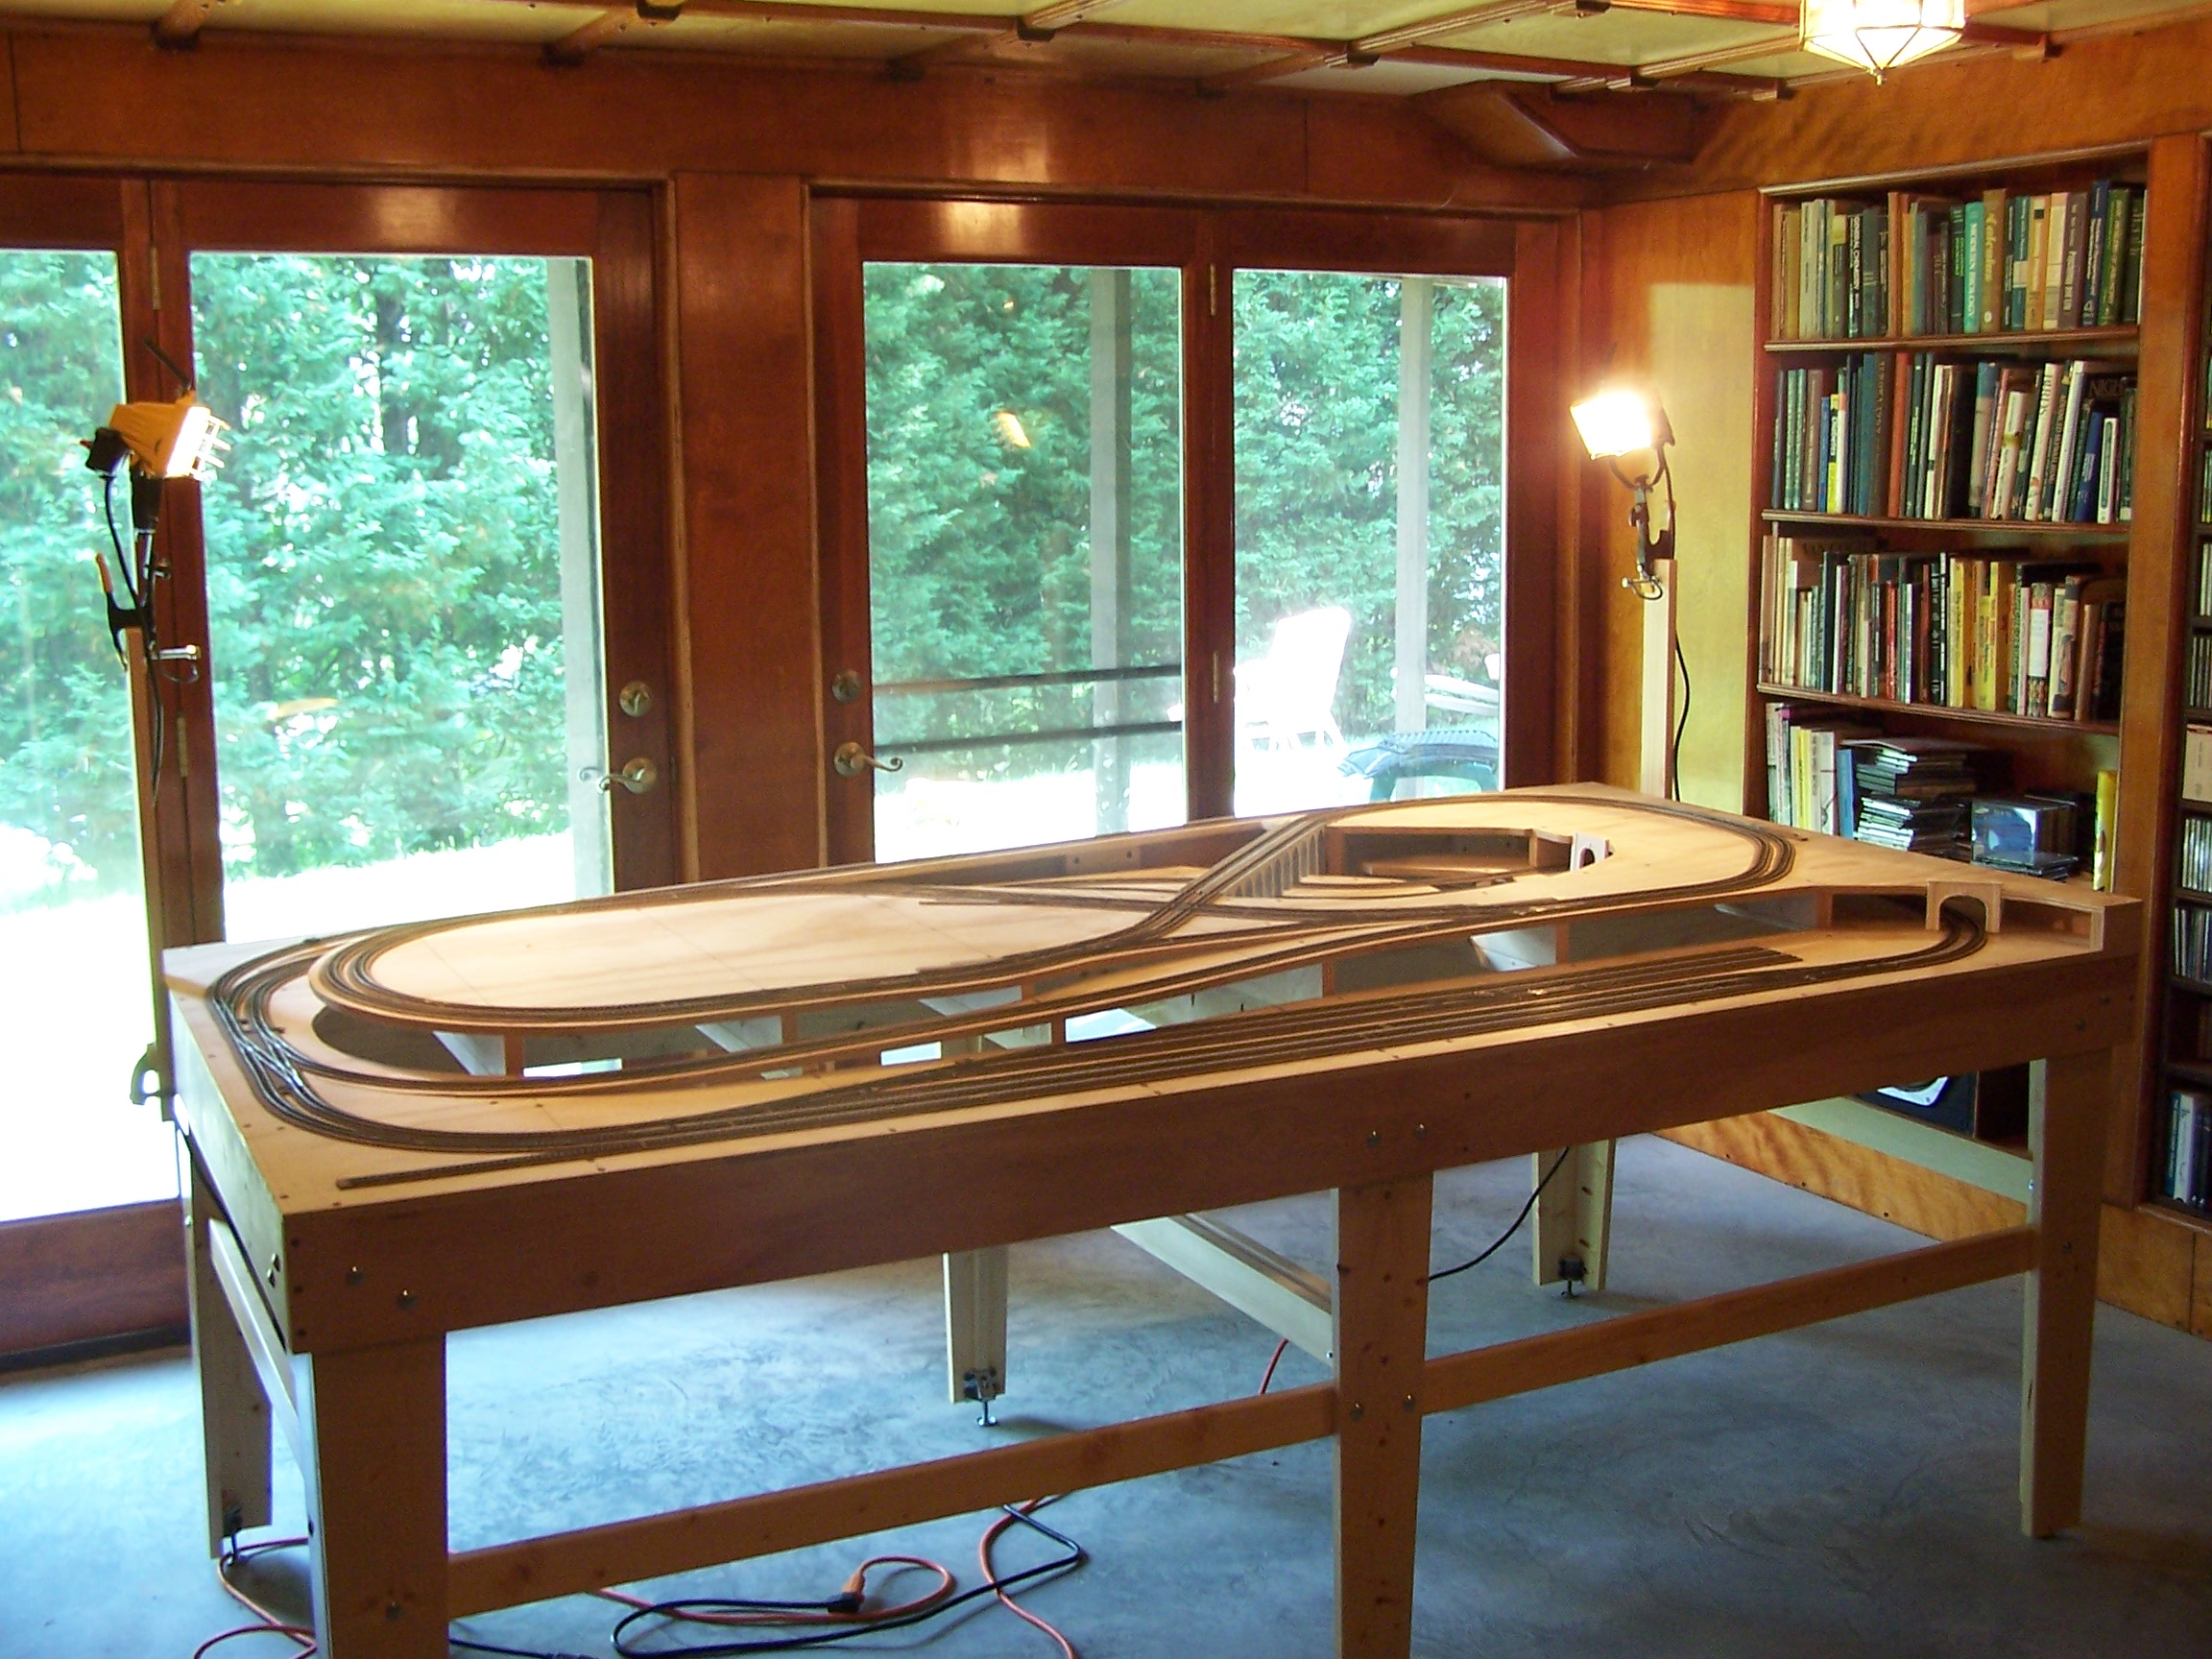 Bill Bentgen Model Railroad Plans For Train Track Wiring Moved To Its Permanent Location